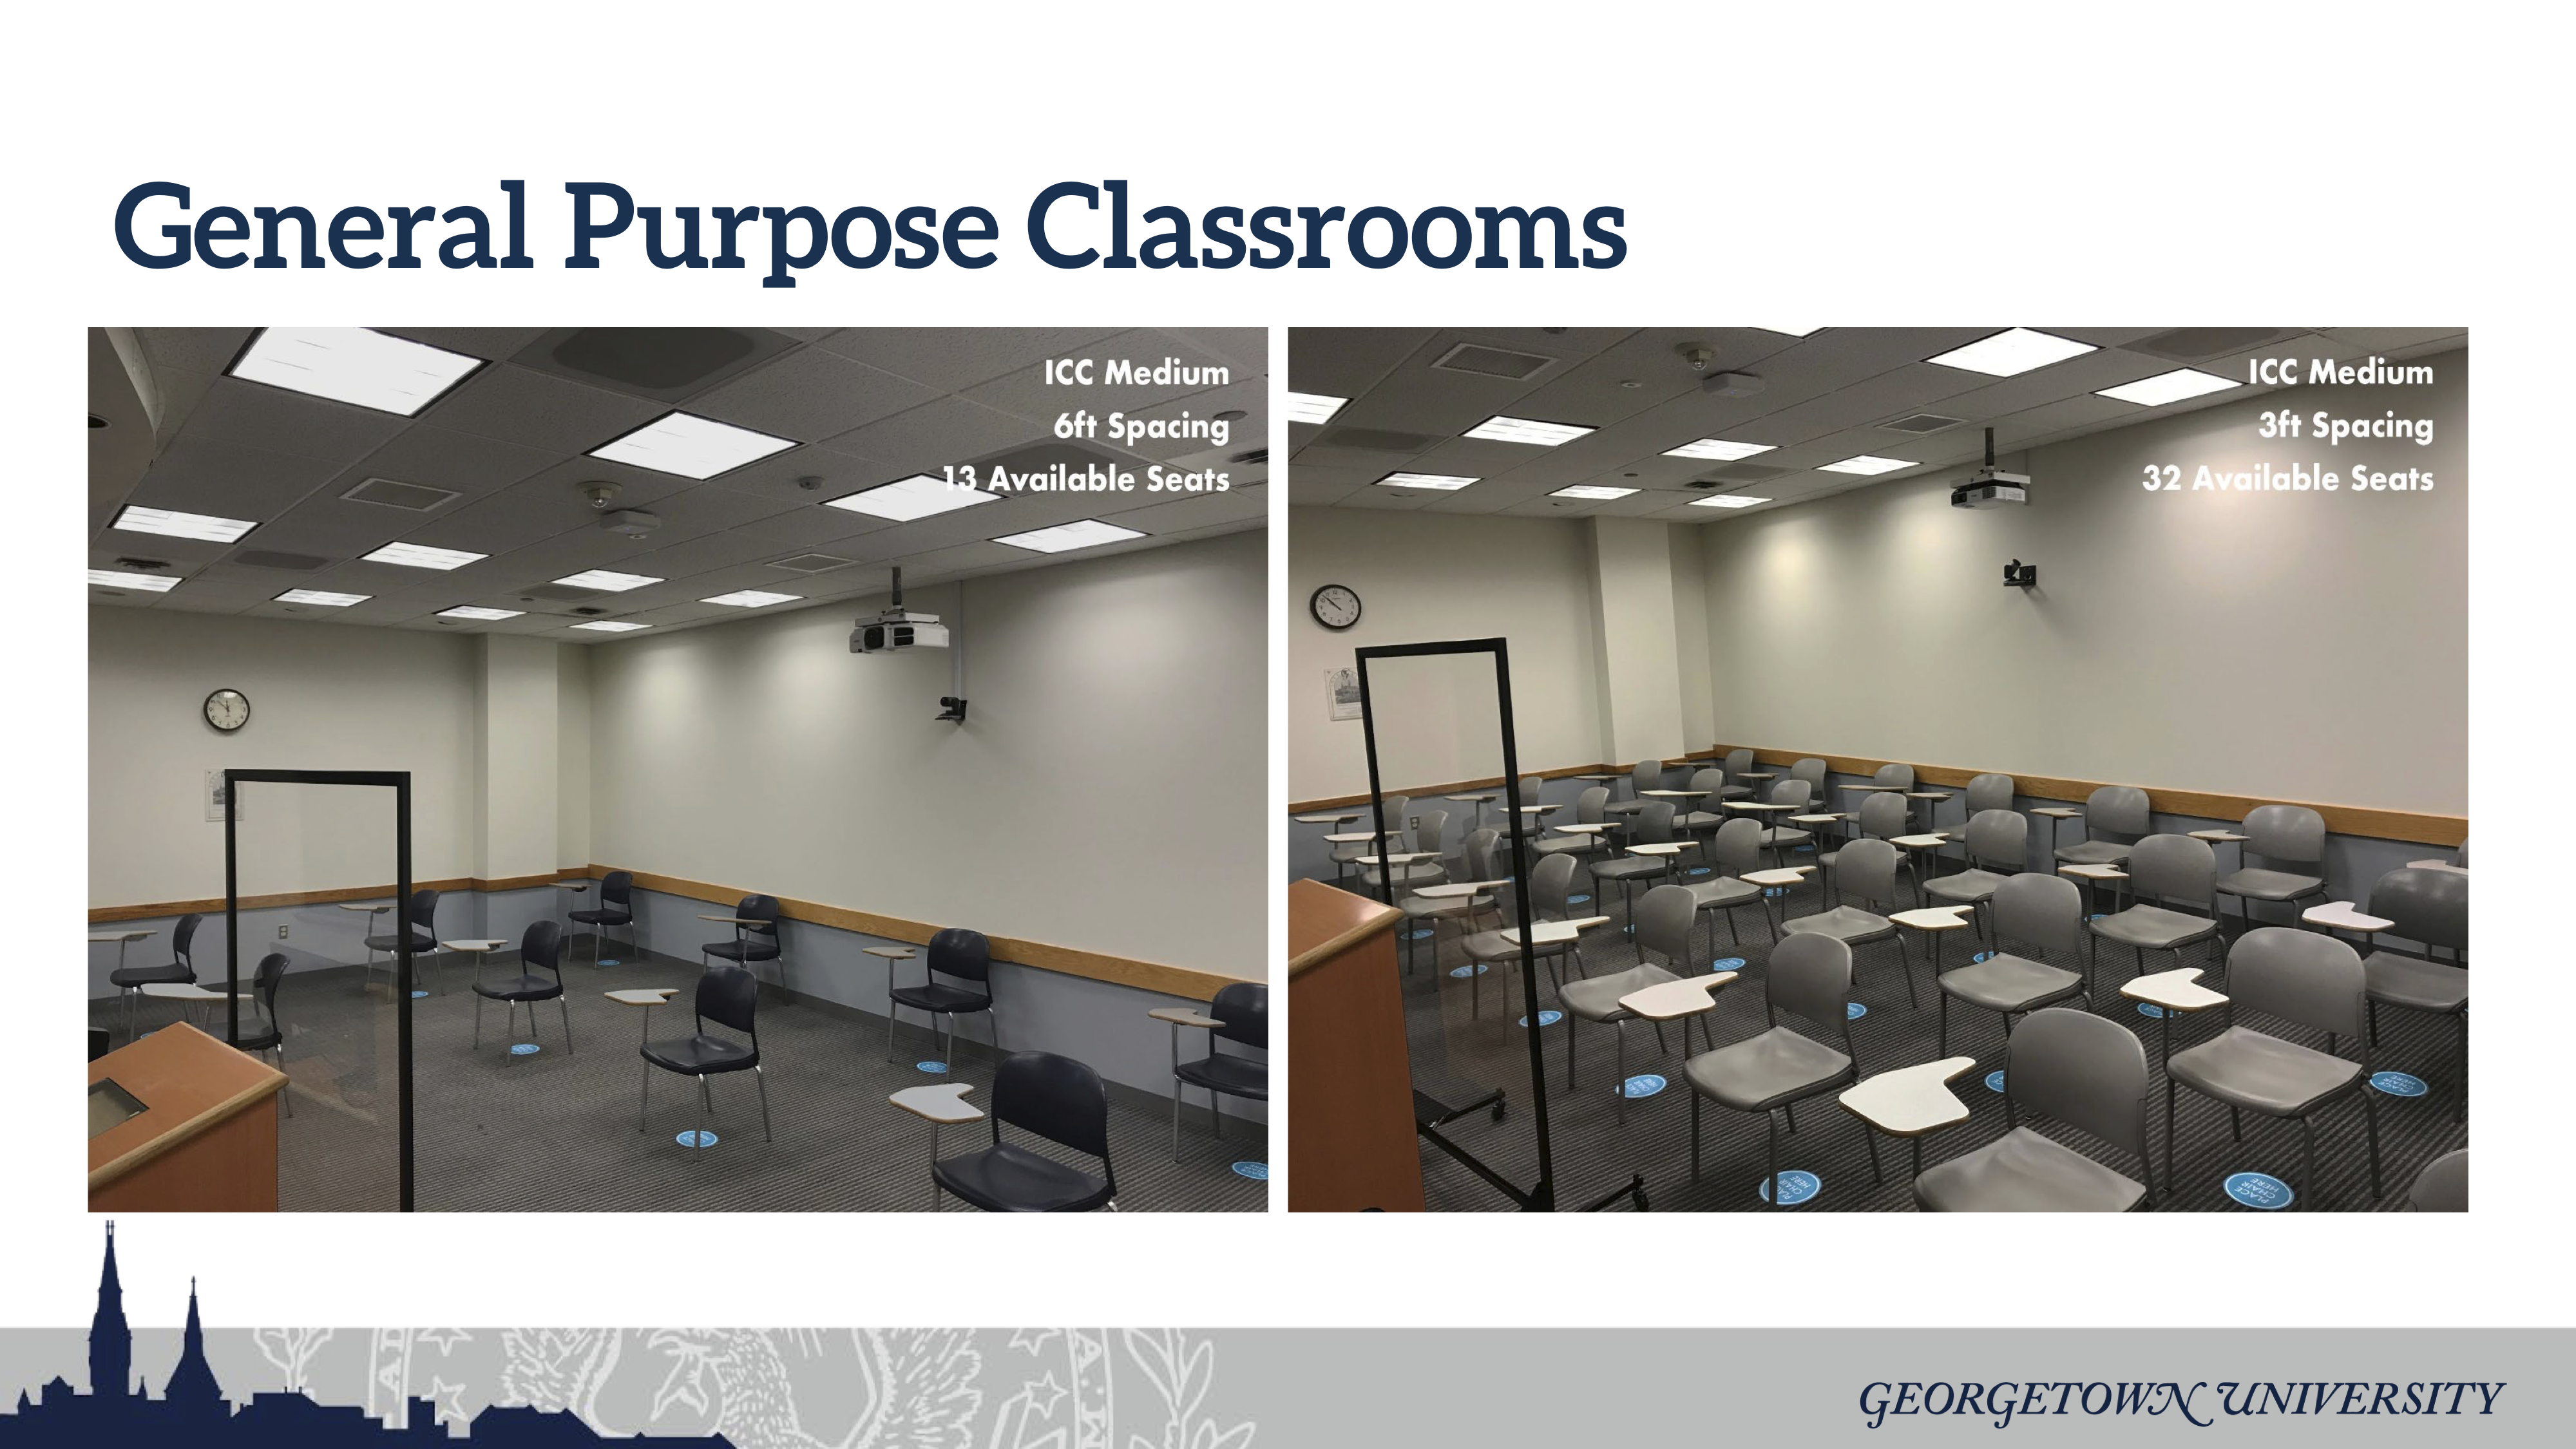 Pictures of Large Classroom with Two Social Distancing Spacing, 6 ft vs 3 ft